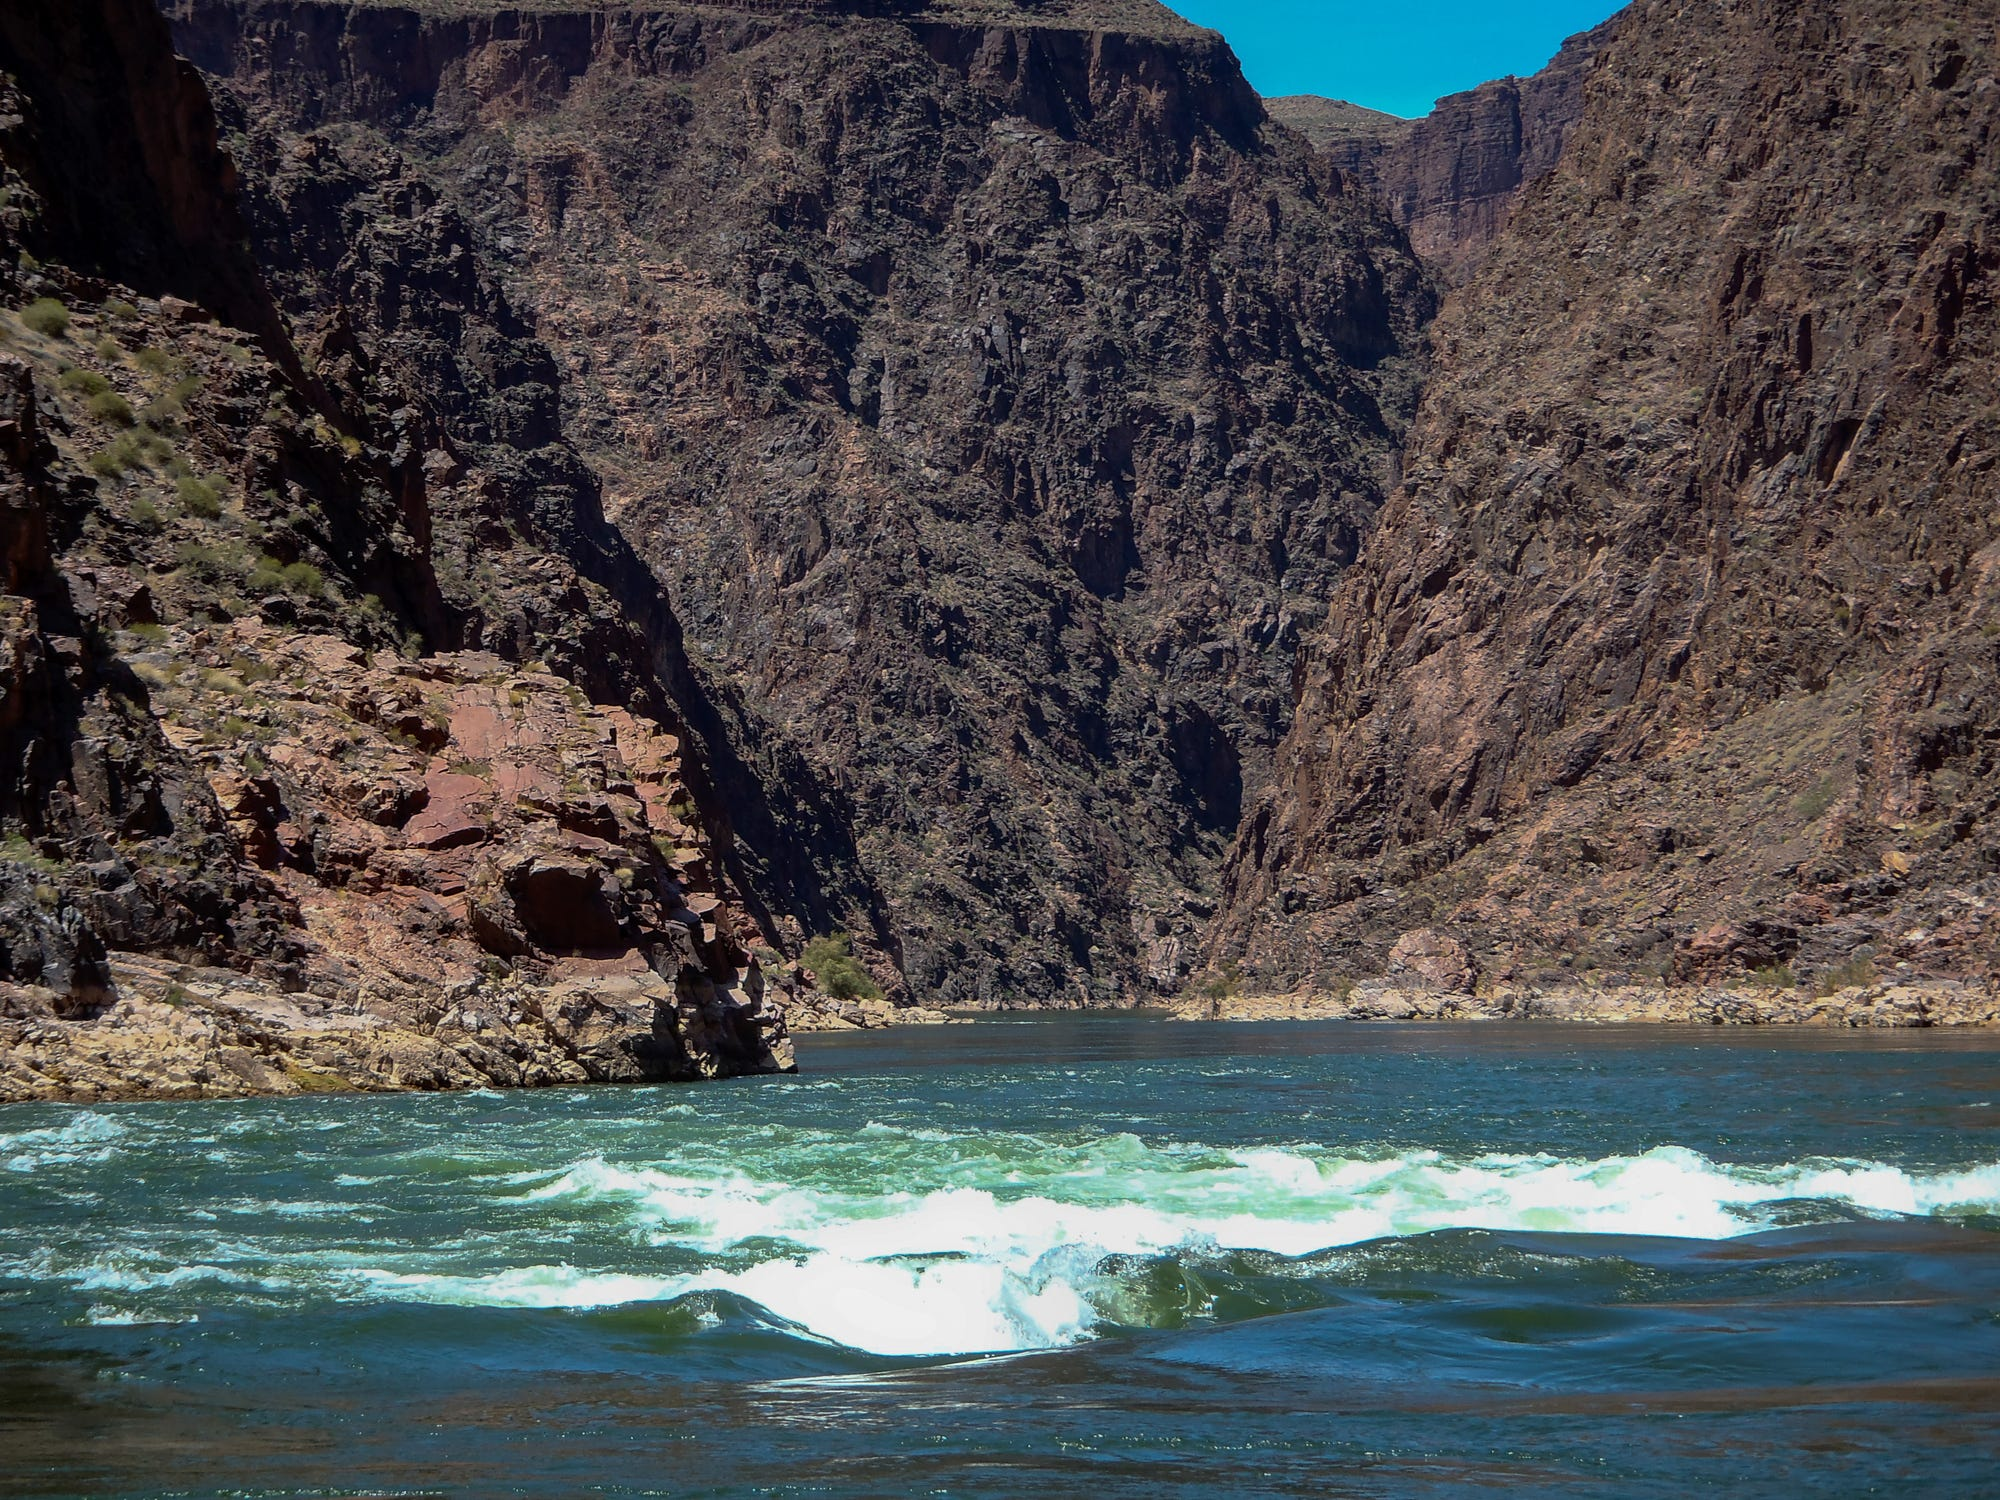 Officials: 63-year-old man drowns in Colorado River at Grand Canyon National Park